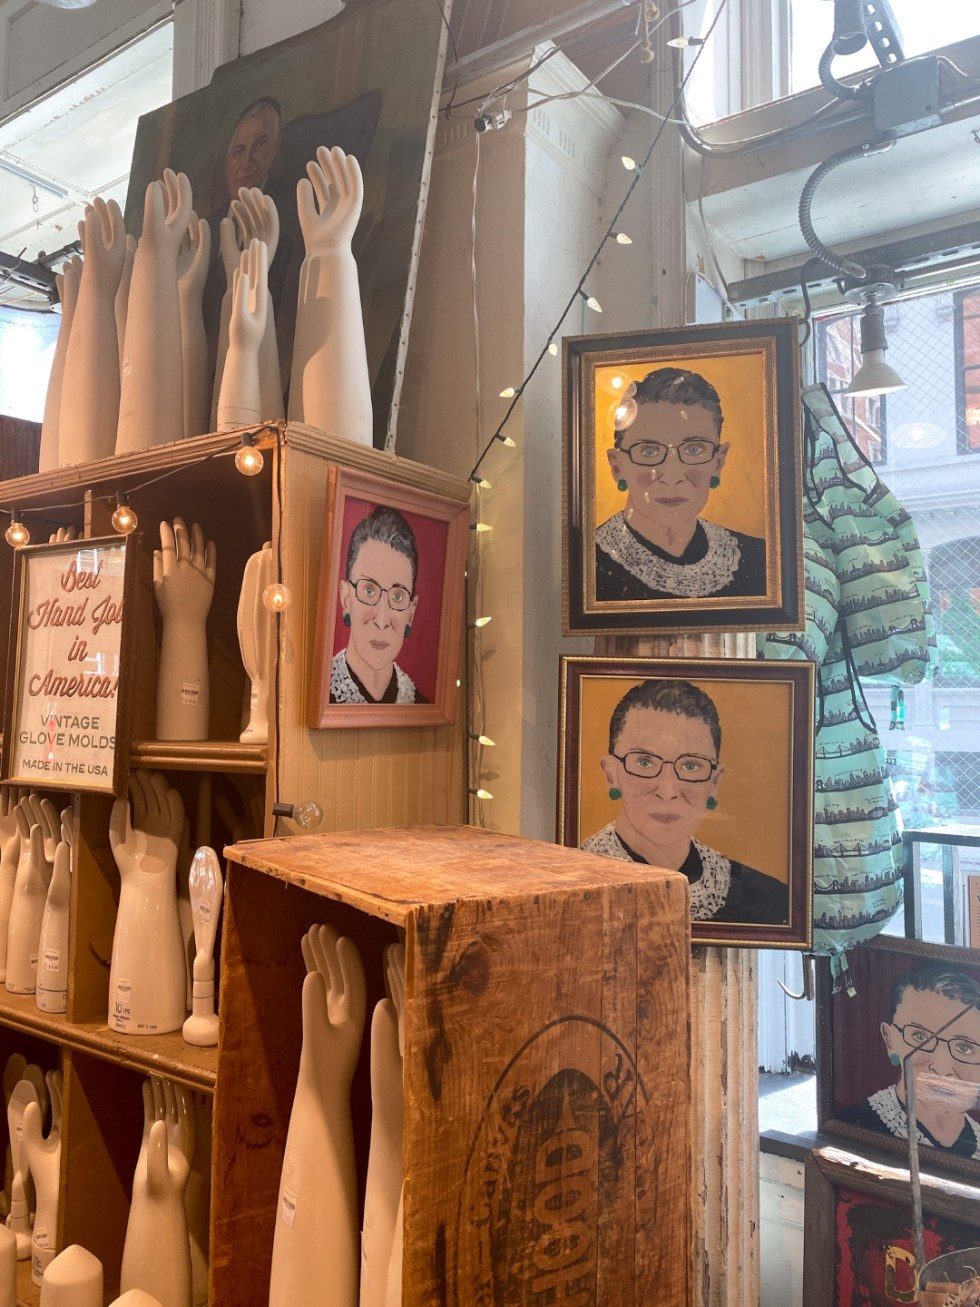 NYC Summer Weekend: Things to Do in NYC in the Summer - I'm Fixin' To - @imfixintoblog   NYC Summer Weekend by popular NC travel blog, I'm Fixin' To: image of ceramic hands and RBG prints.